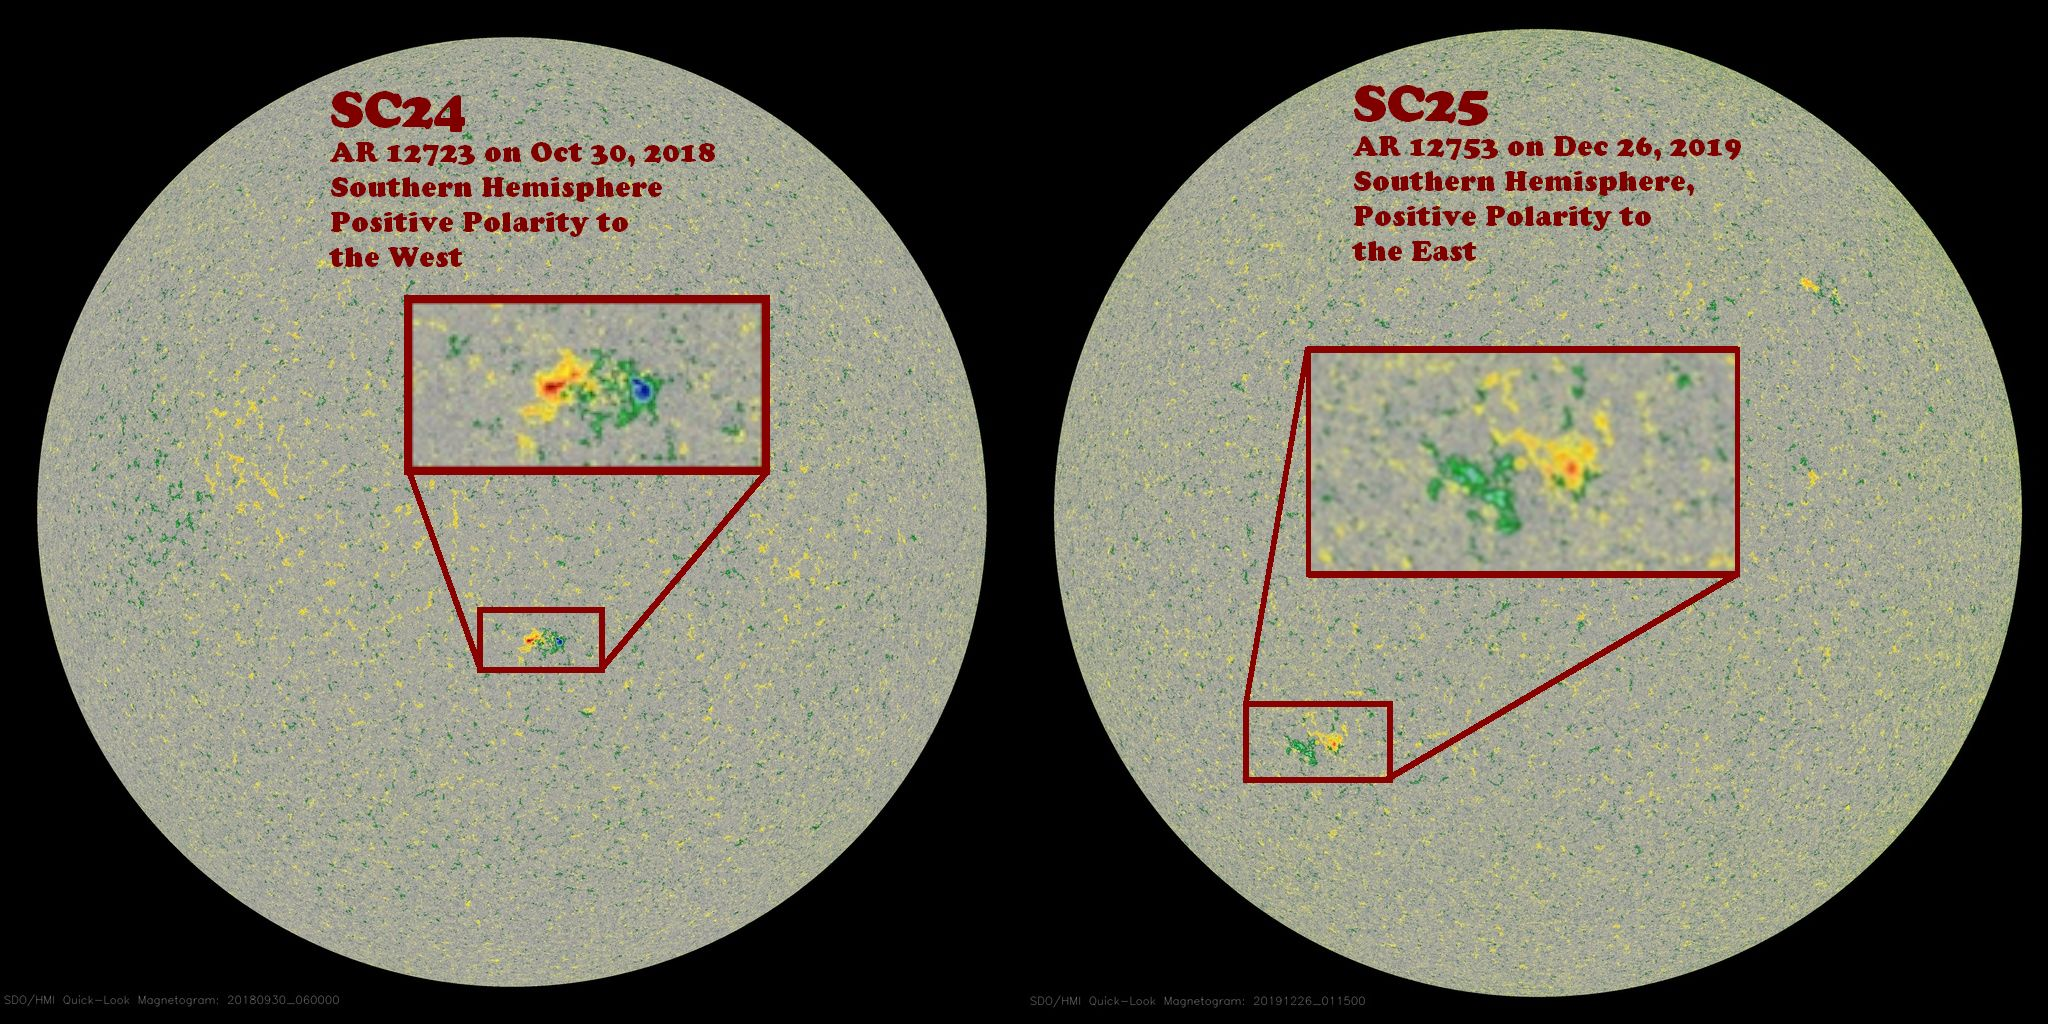 ARs from SC24 and SC25 compared to show the reversed polarity